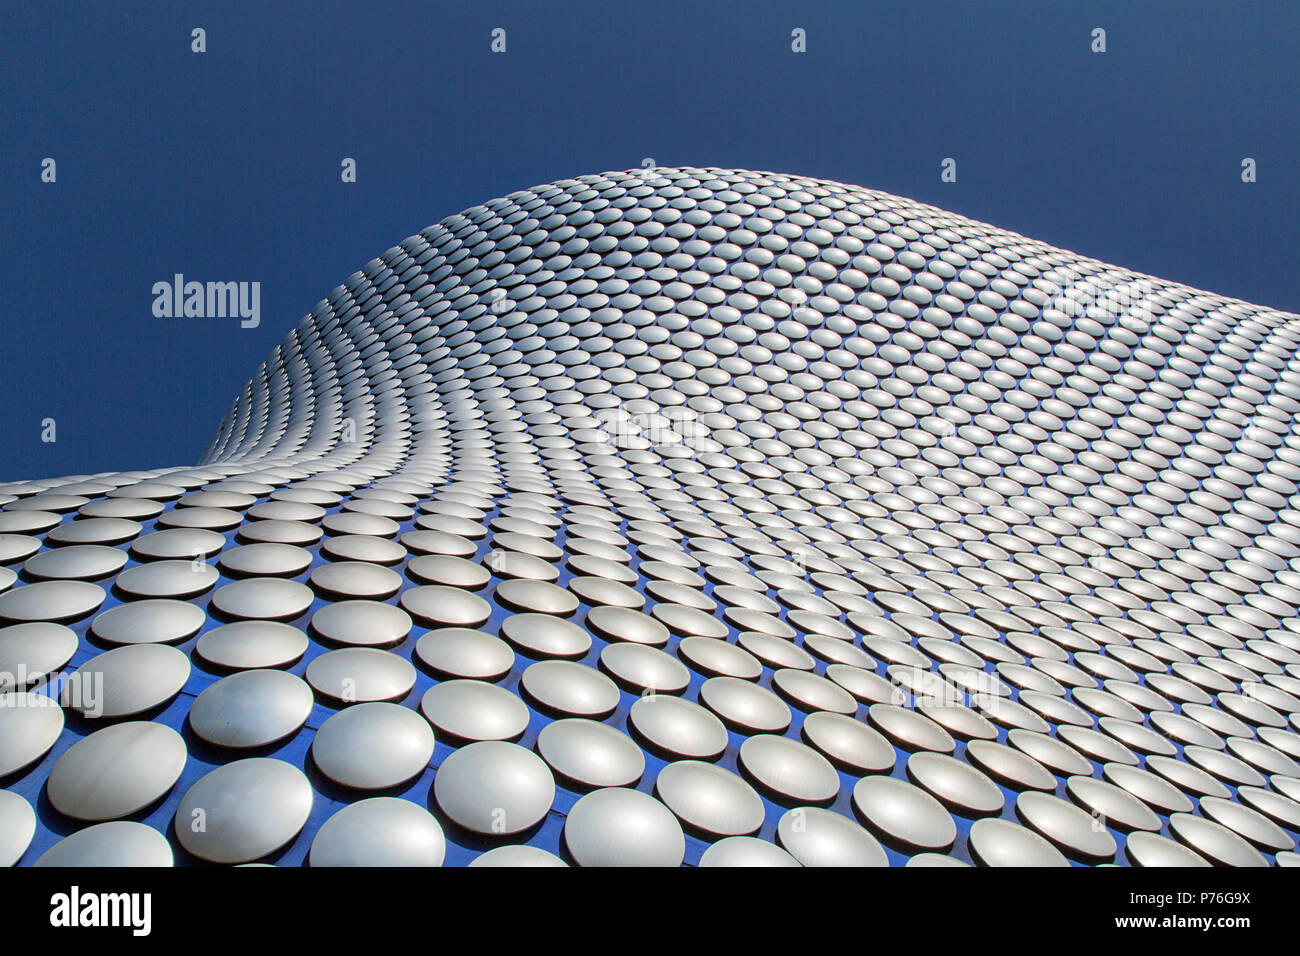 Birmingham, UK: June 29, 2018: Selfridges is one of Birmingham city's most distinctive and iconic landmarks and part of the Bullring Shopping Centre. - Stock Image